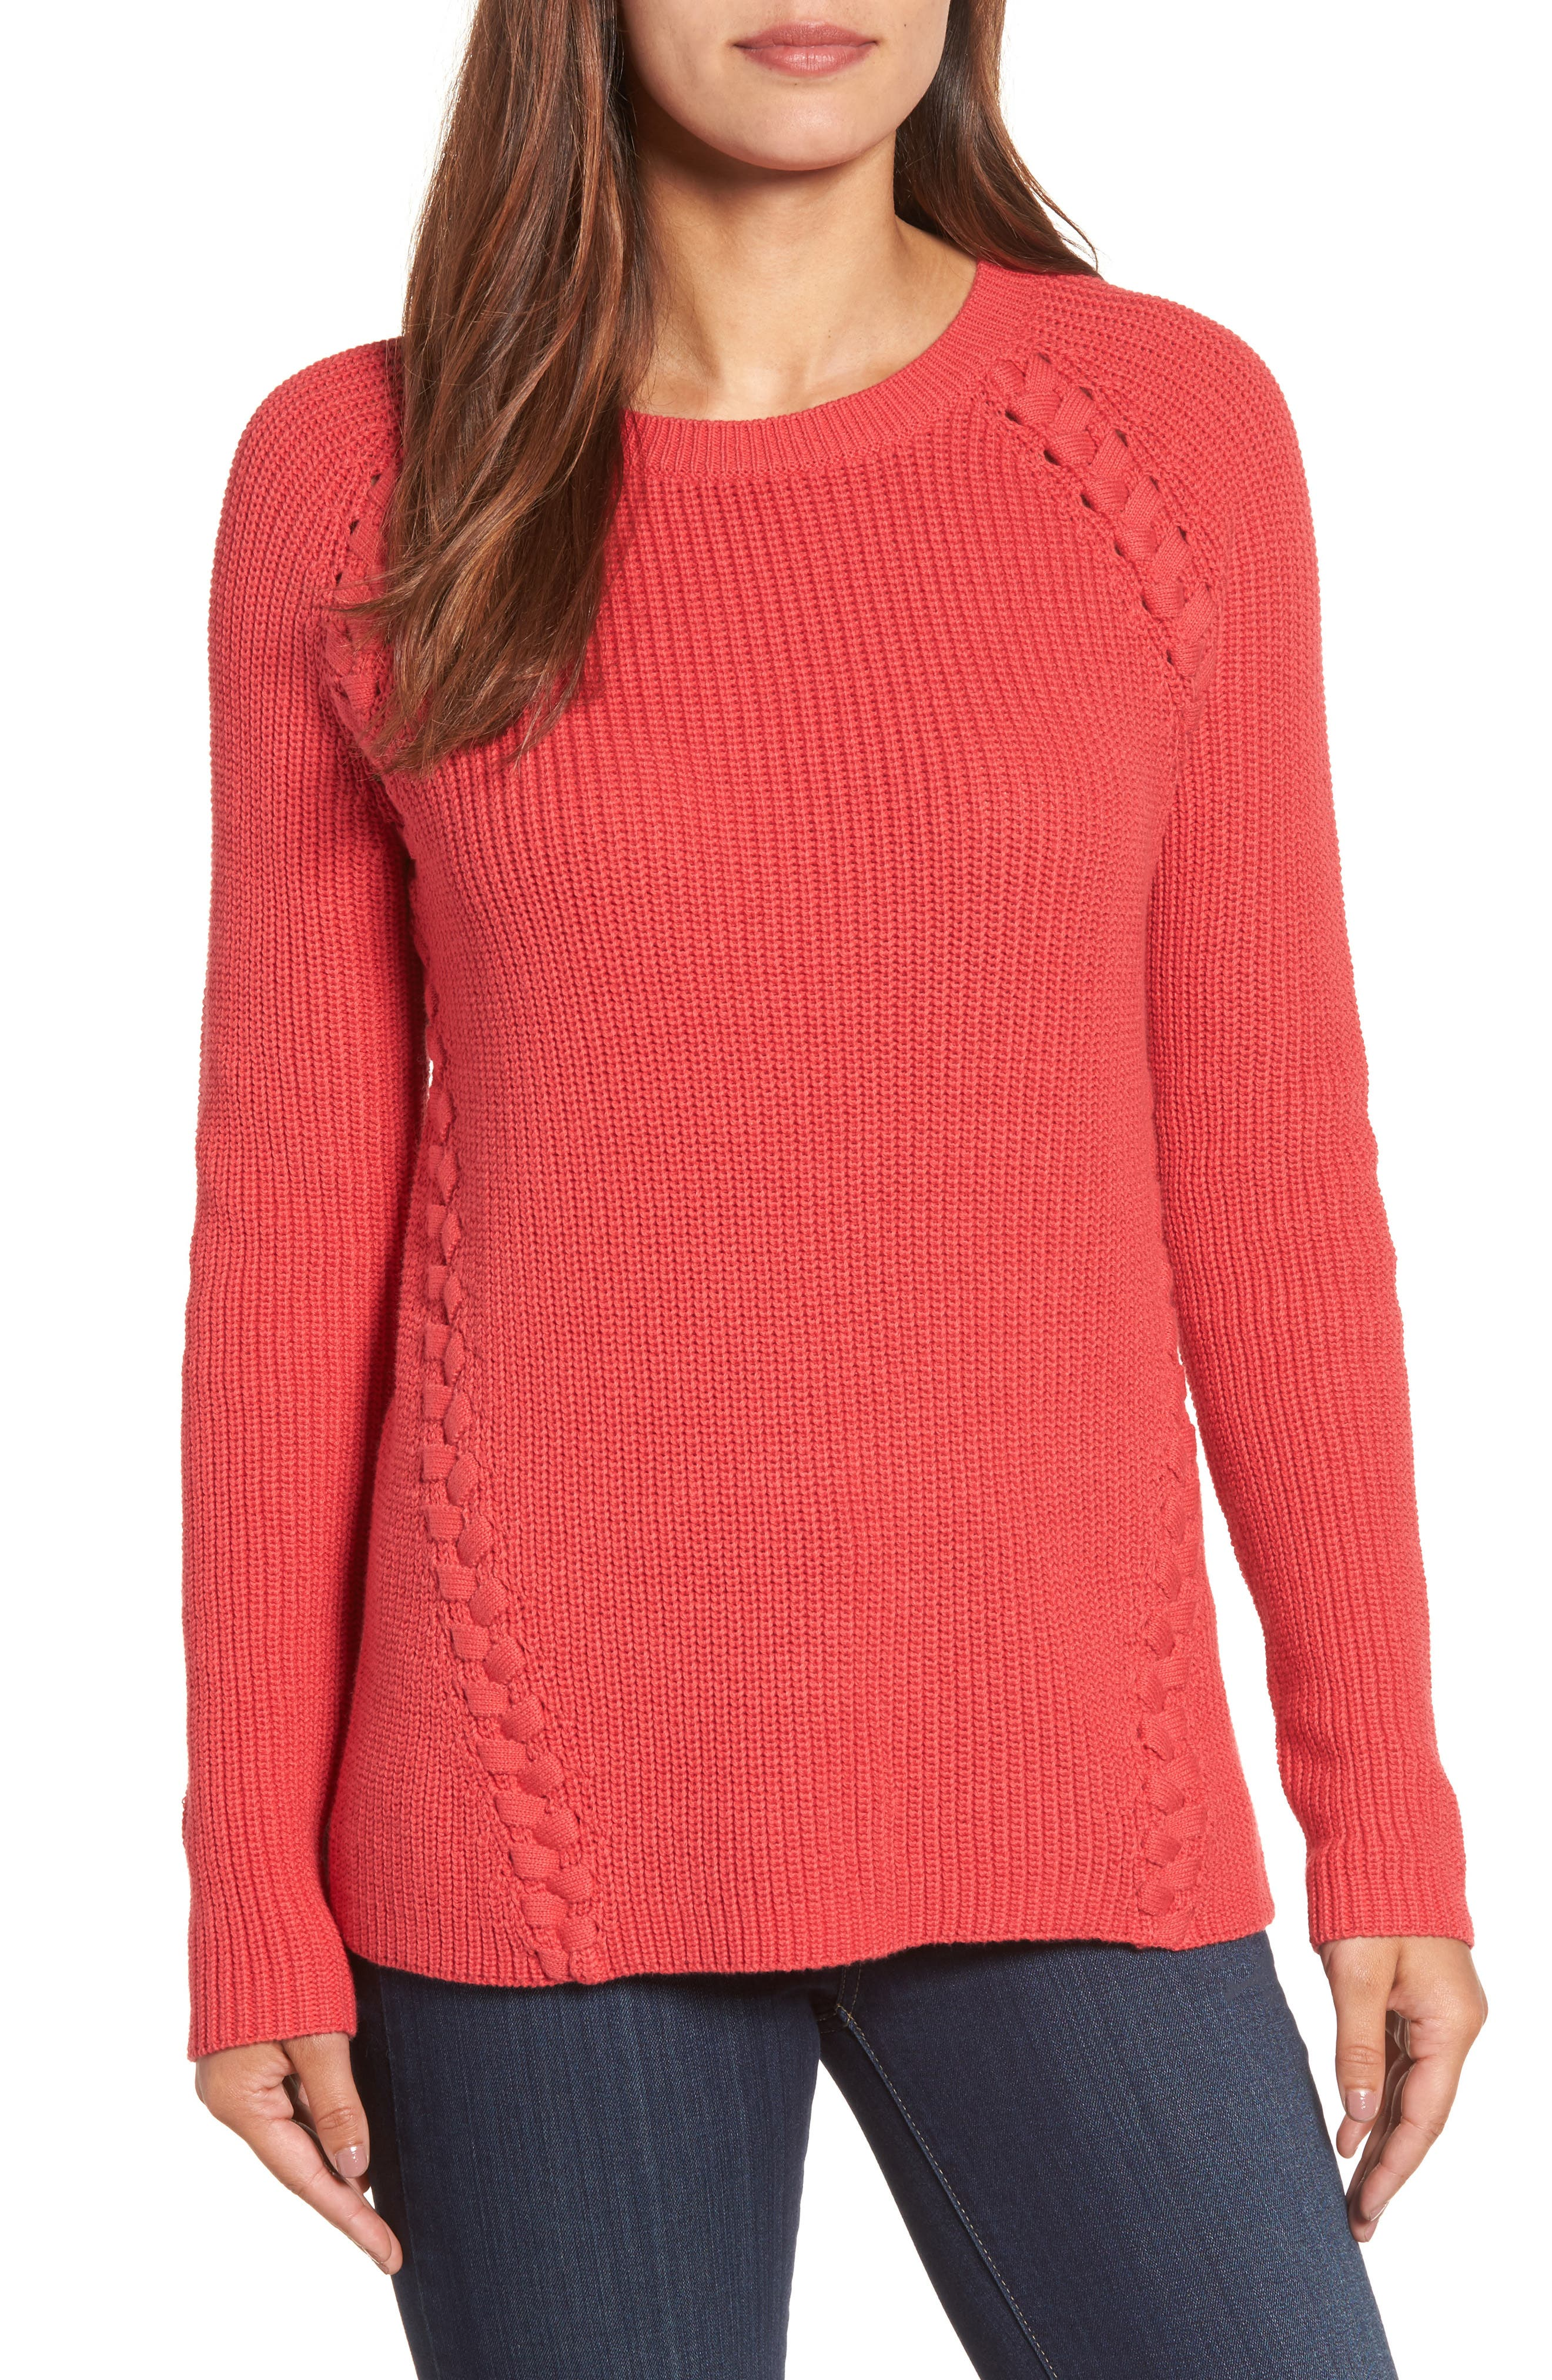 Main Image - Halogen® Lace-Up Sweater (Regular & Petite)